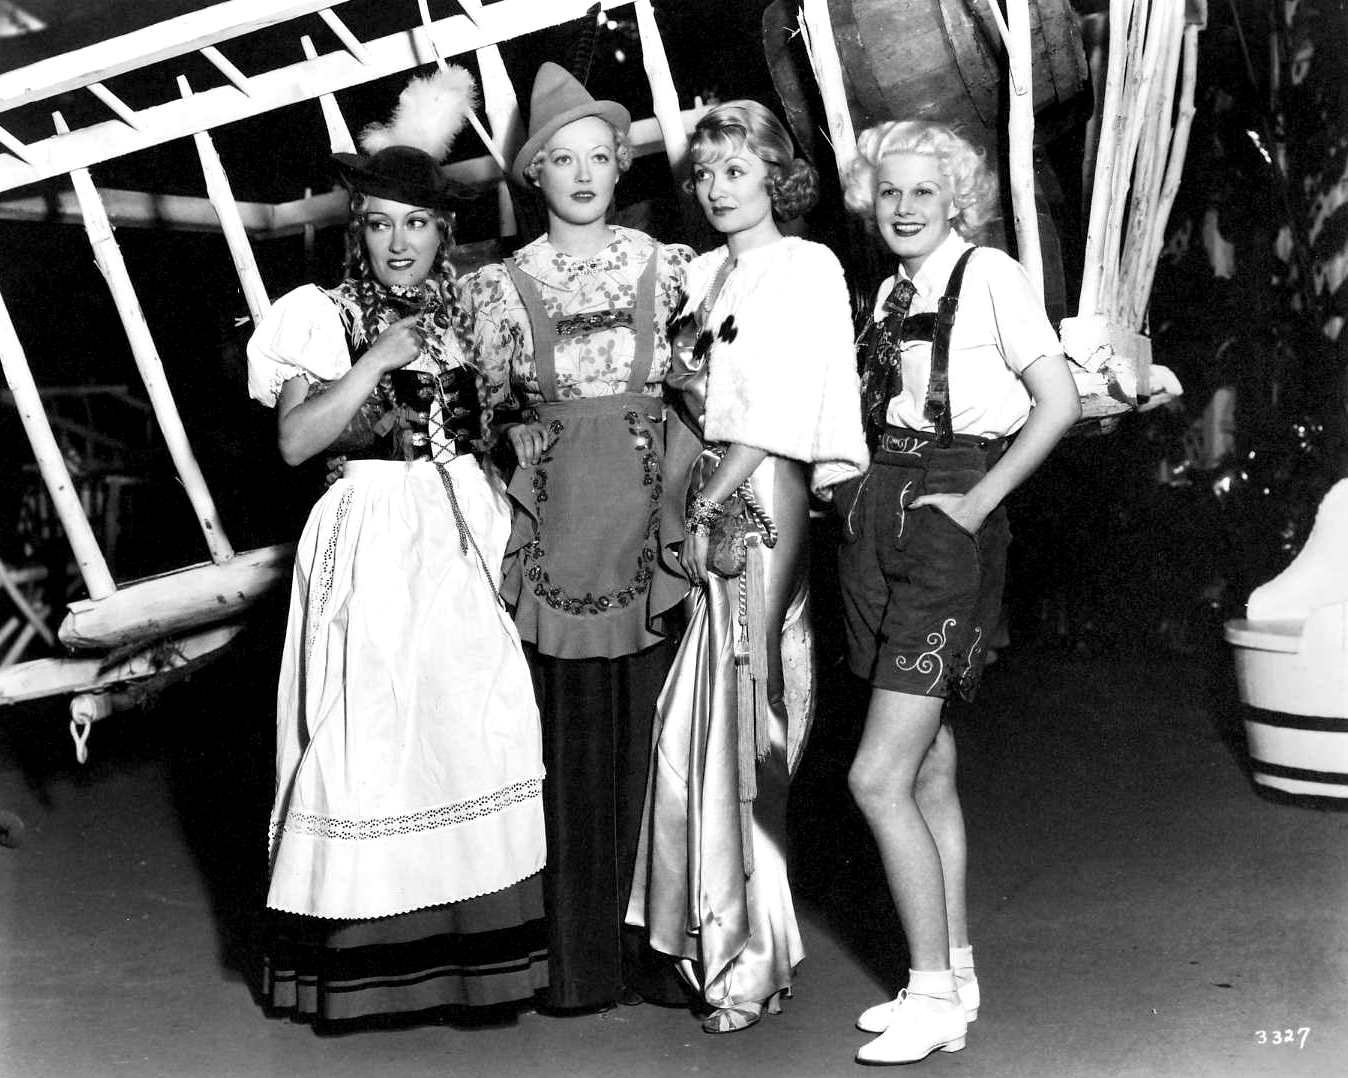 GLORIA SWANSON, MARION DAVIES, CONSTANCE BENNETT & JEAN HARLOW AT PARTY - 8X10 PHOTO (ZY-402)